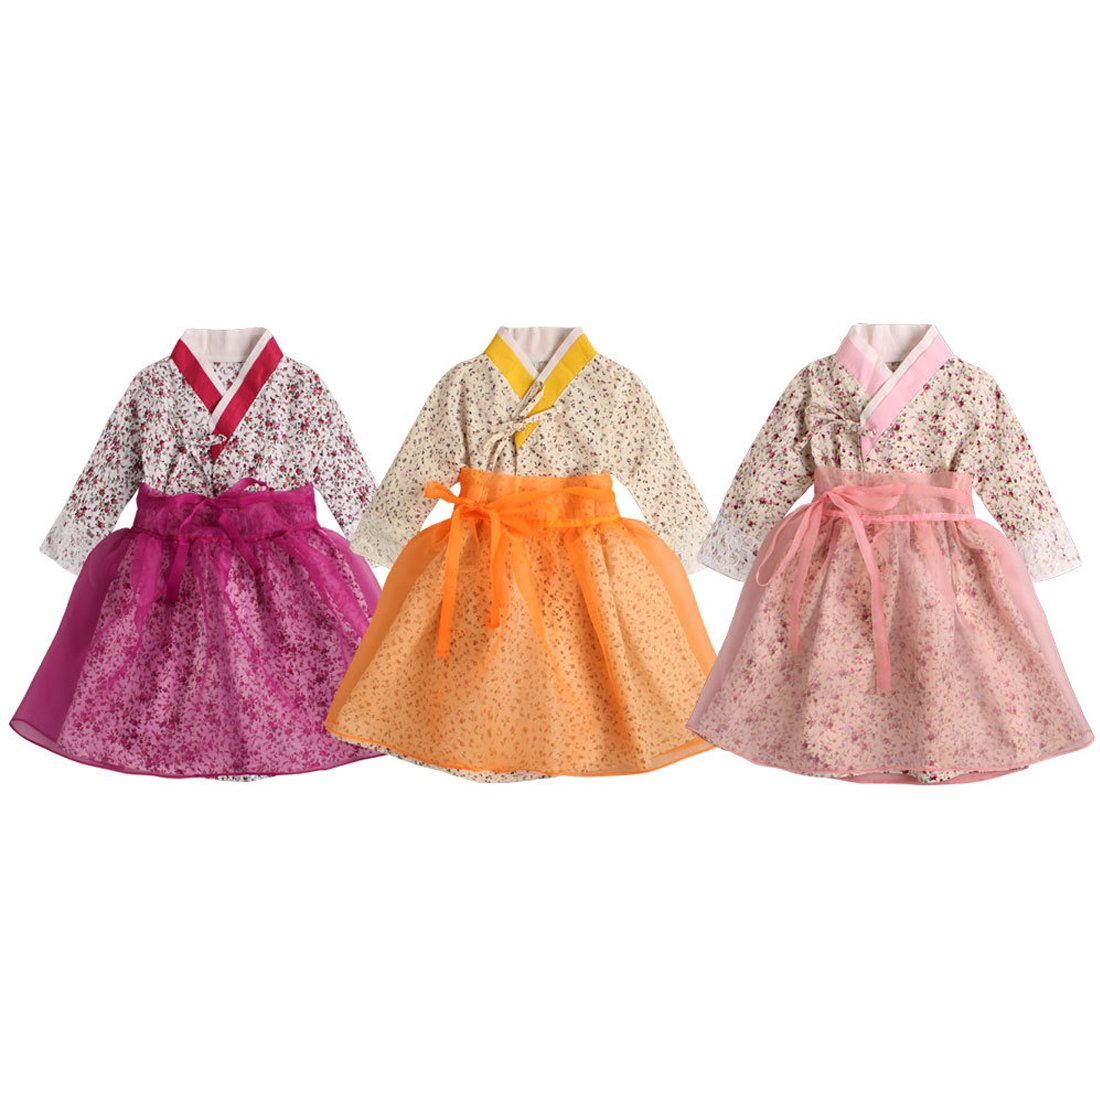 PAUBOLI Baby Girl Korean Clothes Korean Hanbok Long Sleeve Dress 9 Months to 8T